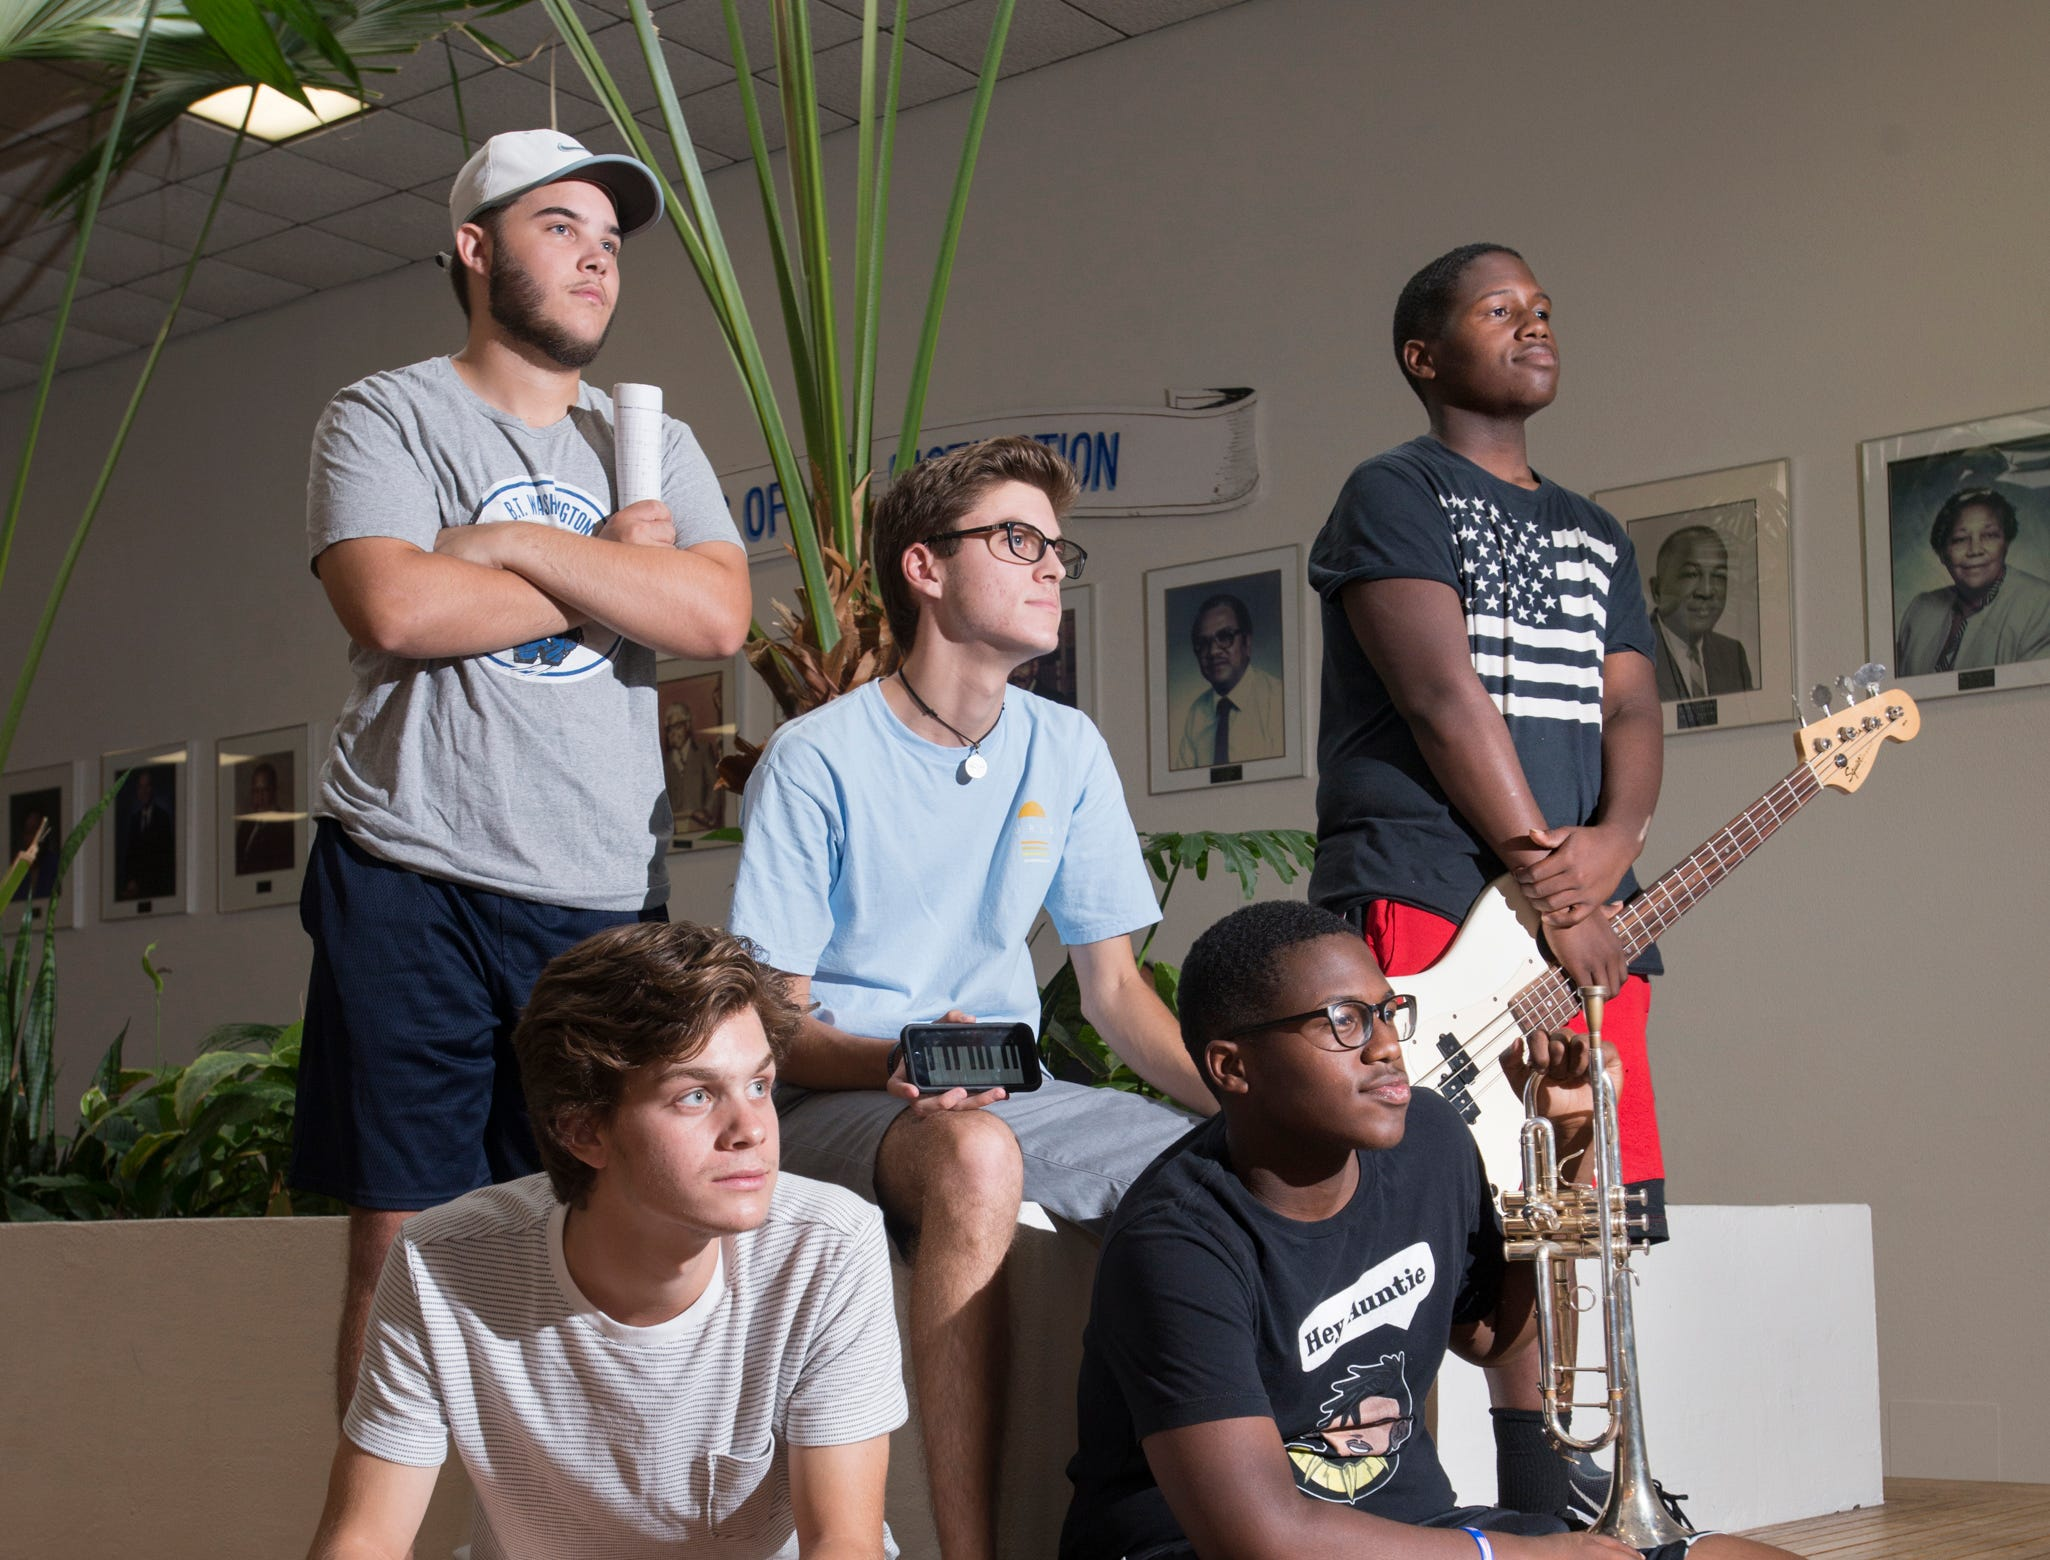 Soul Station jazz band members - saxophonist Noah Hall, clockwise from top left, keyboardist Bryce Lyublanovits, bass guitarist Andre Conner, trumpeter Andrew Conner, and drummer Chase Rogers pose in the atrium at Booker T. Washington High School in Pensacola on Friday, August 24, 2018.